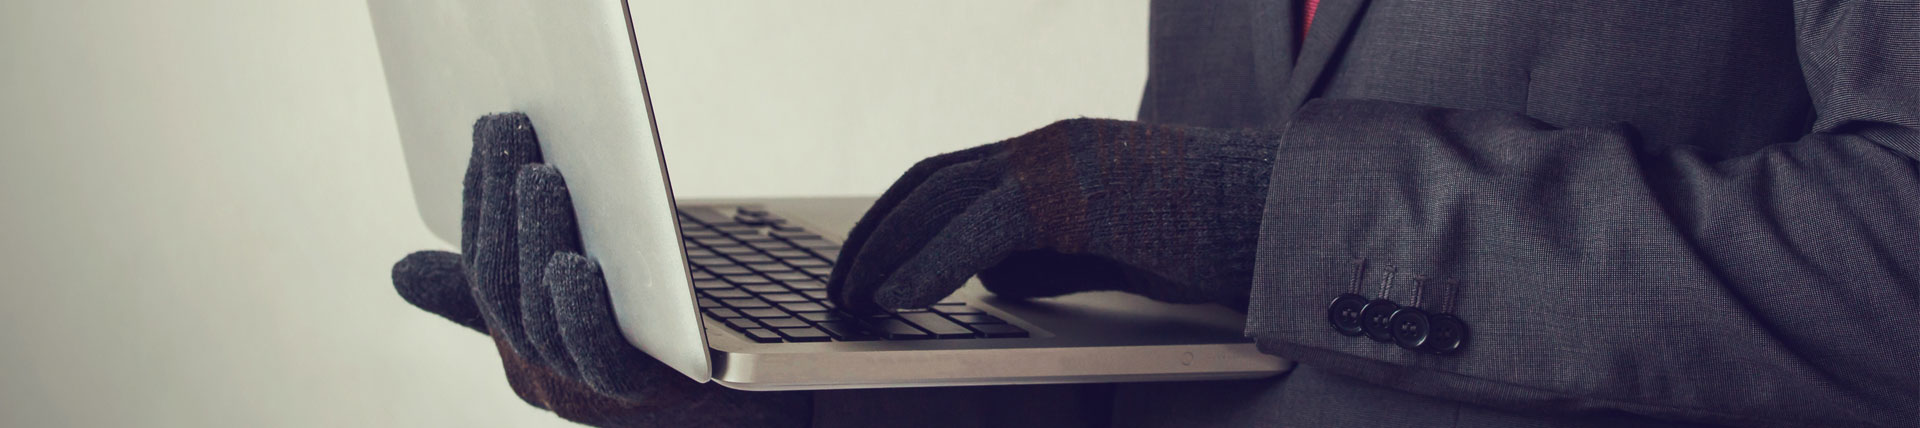 man wearing gloves on a laptop